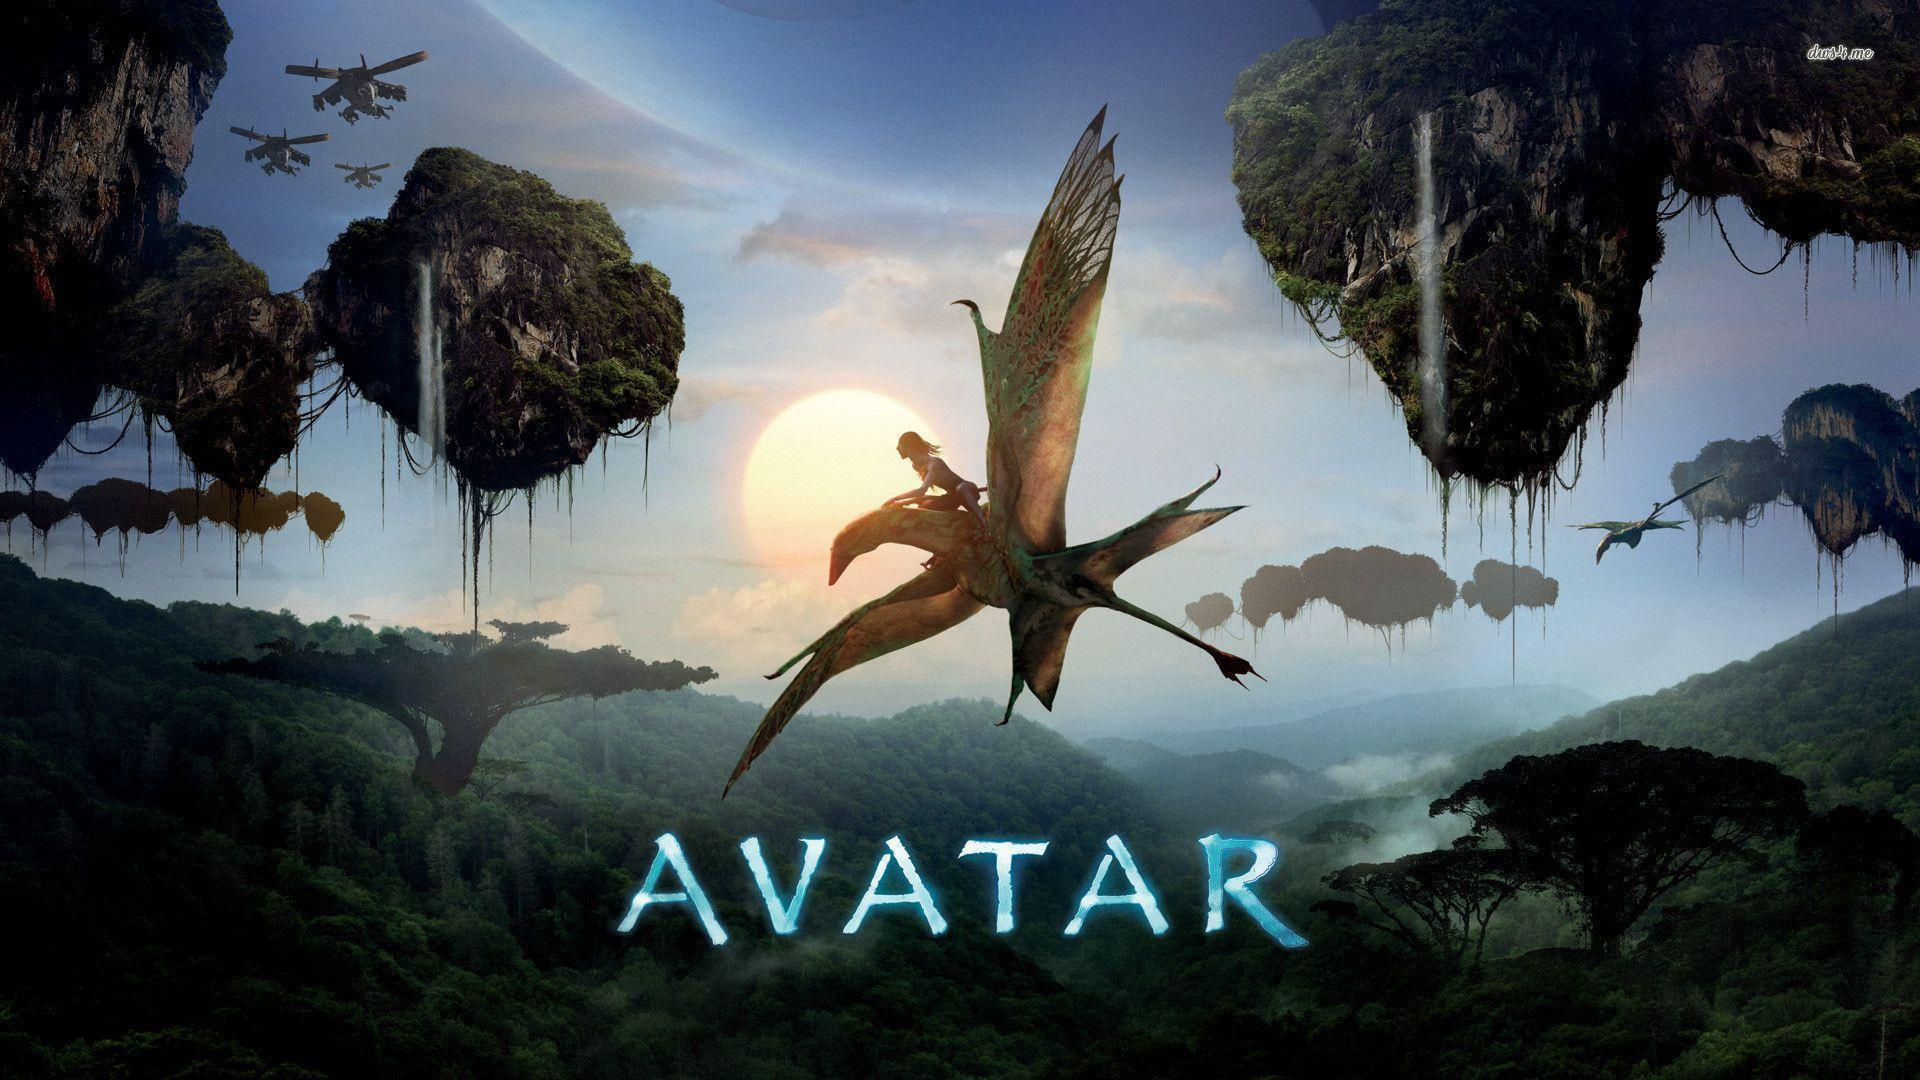 Avatar Wallpapers Top Free Avatar Backgrounds